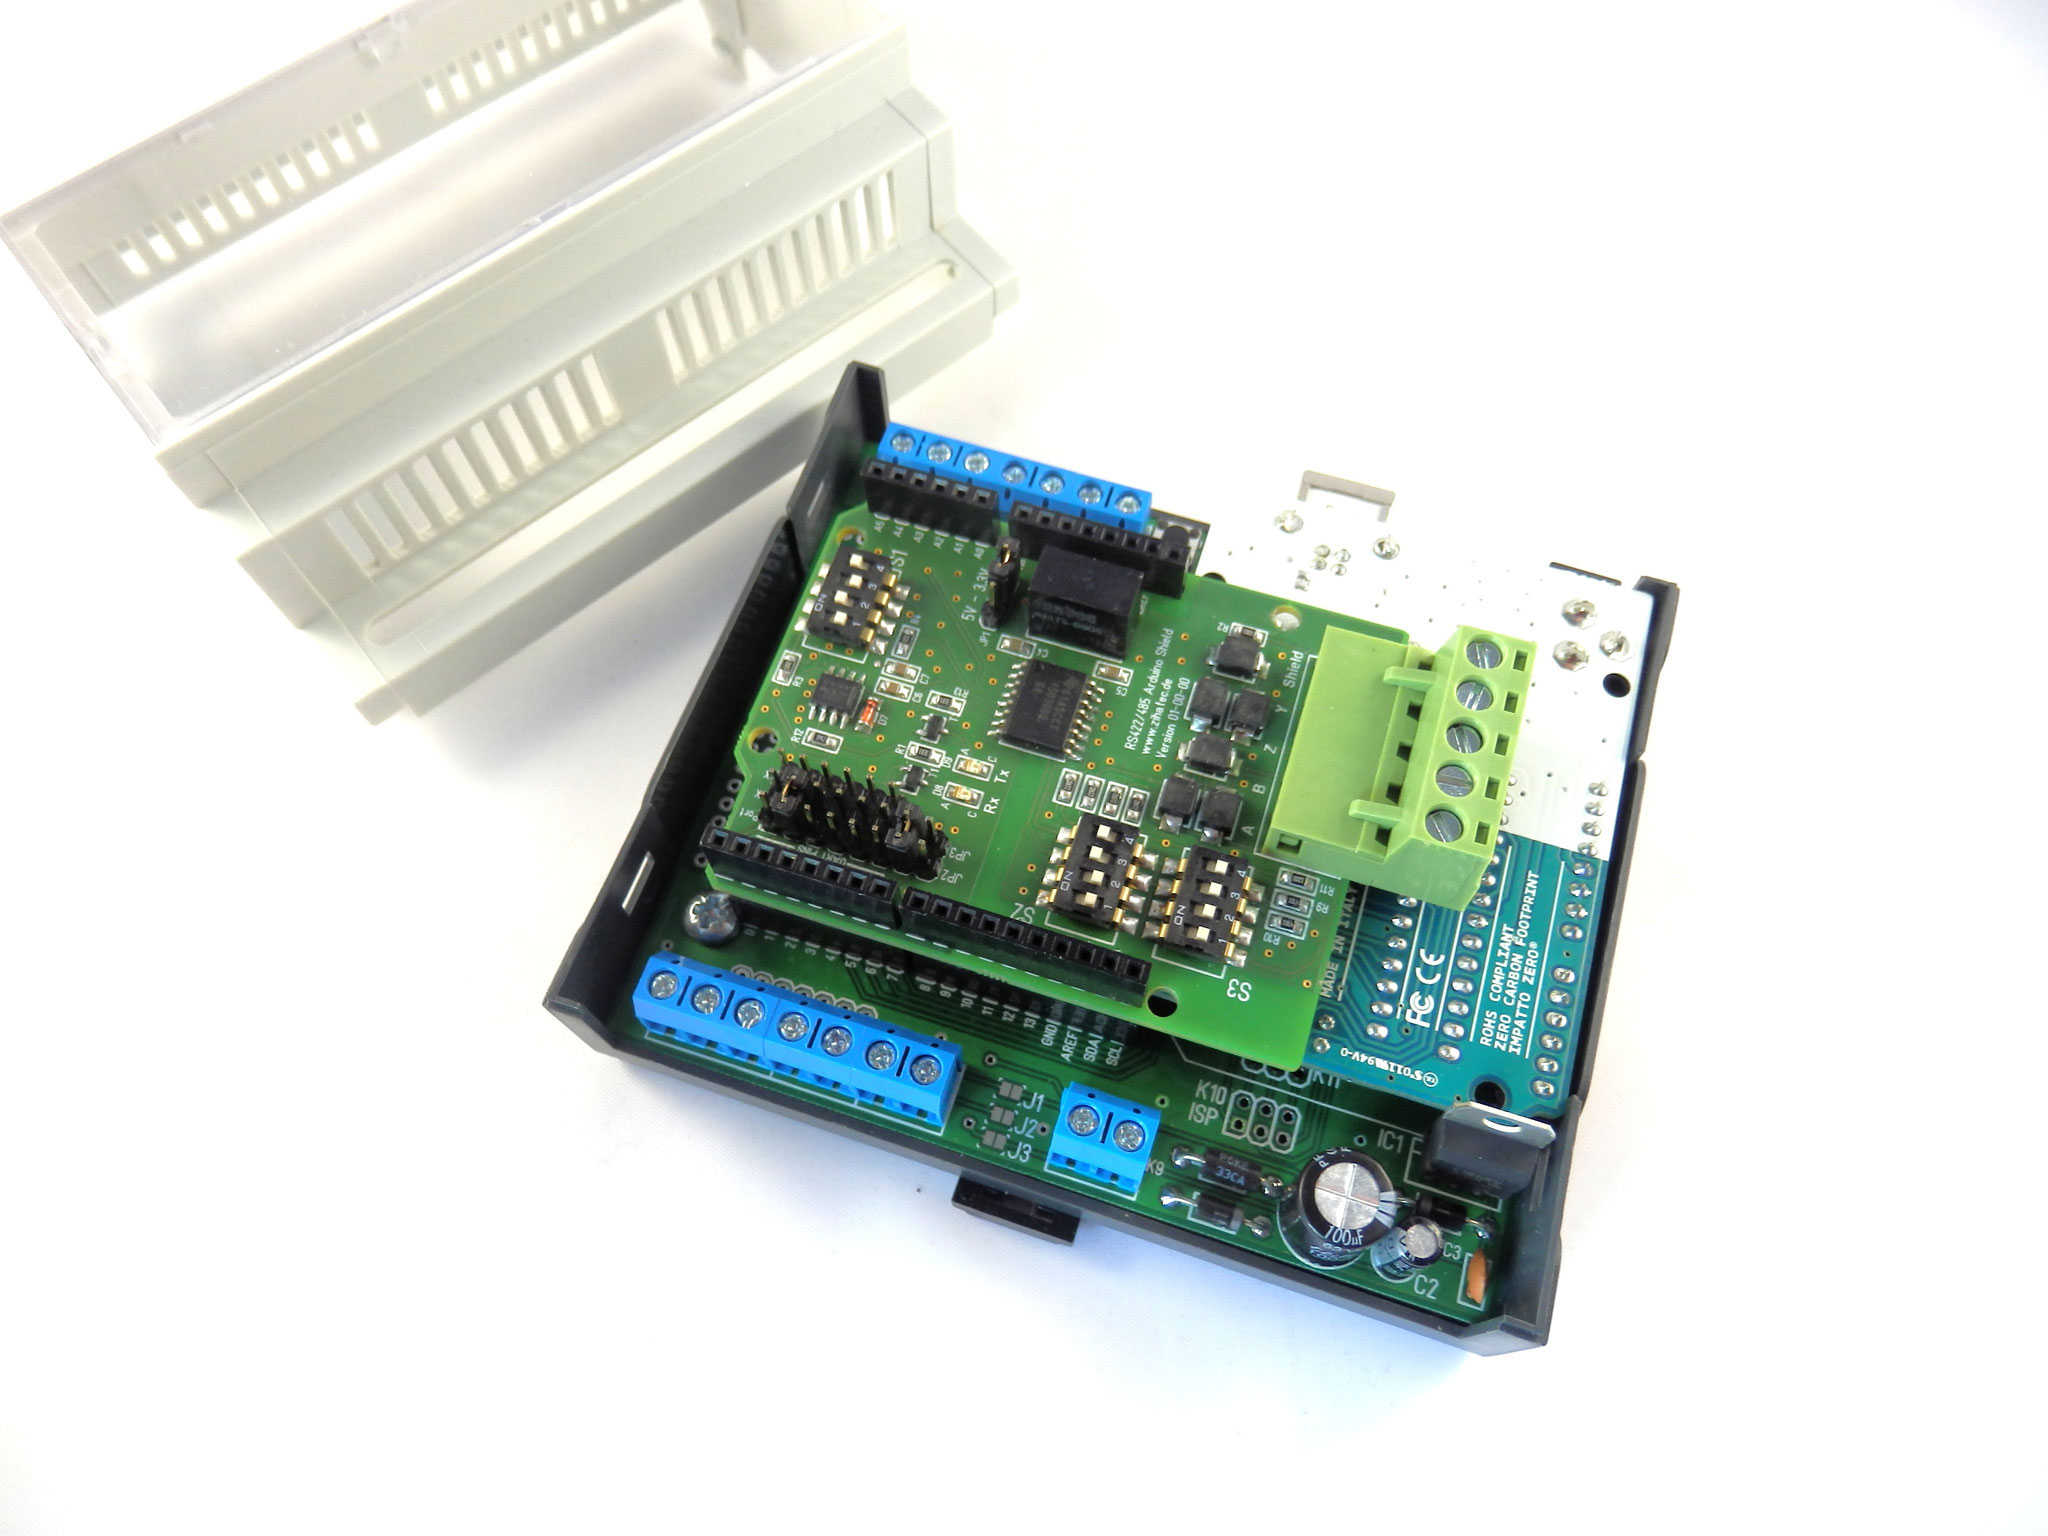 Shield mounted in Arduibox din rail enclosure set